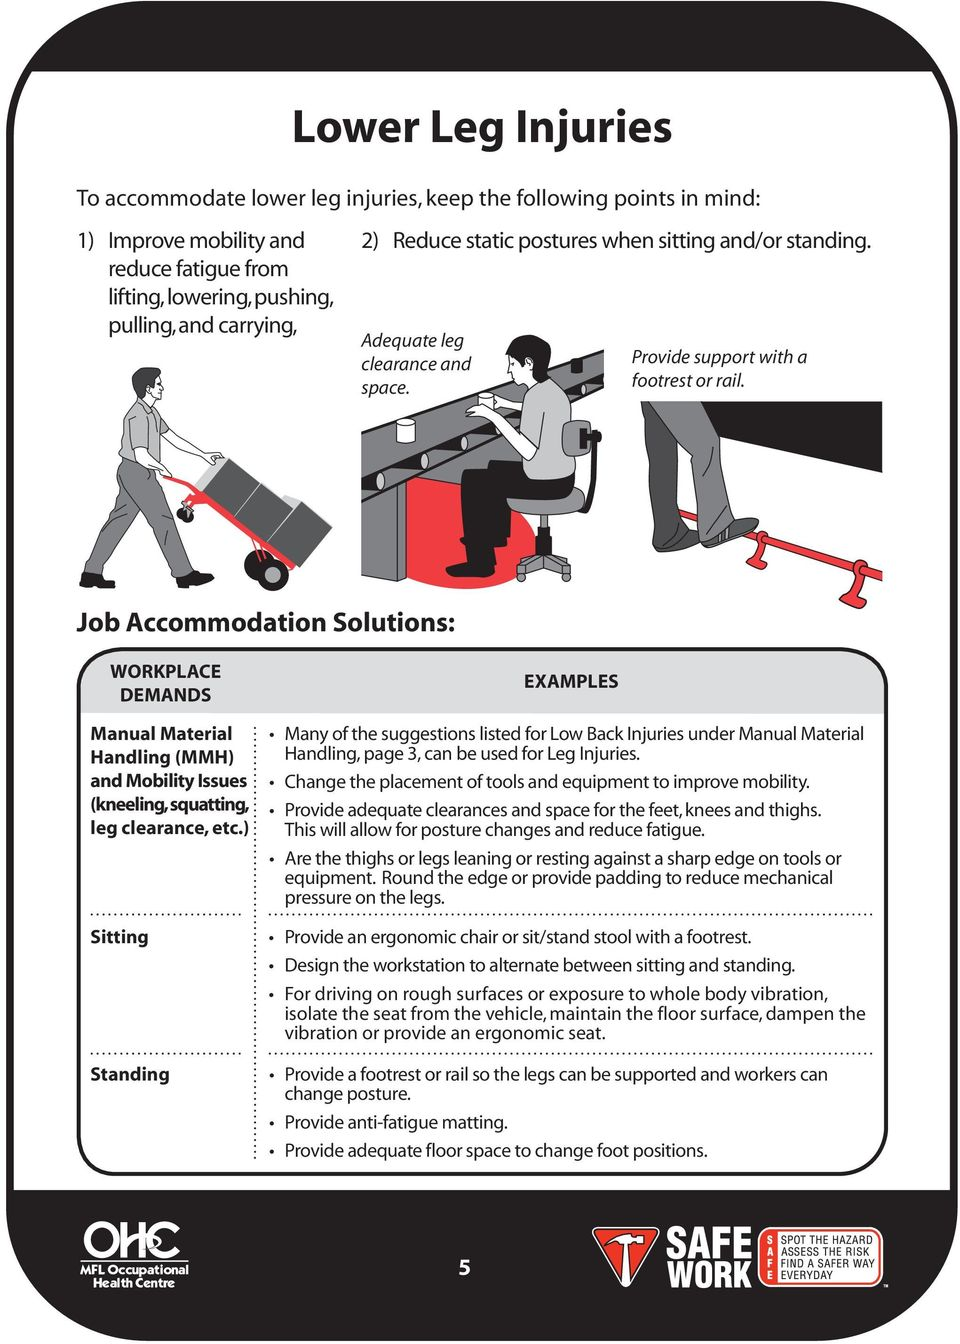 Job Accommodation Solutions: WORKPLACE Manual Material Handling (MMH) and Mobility Issues (kneeling, squatting, leg clearance, etc.